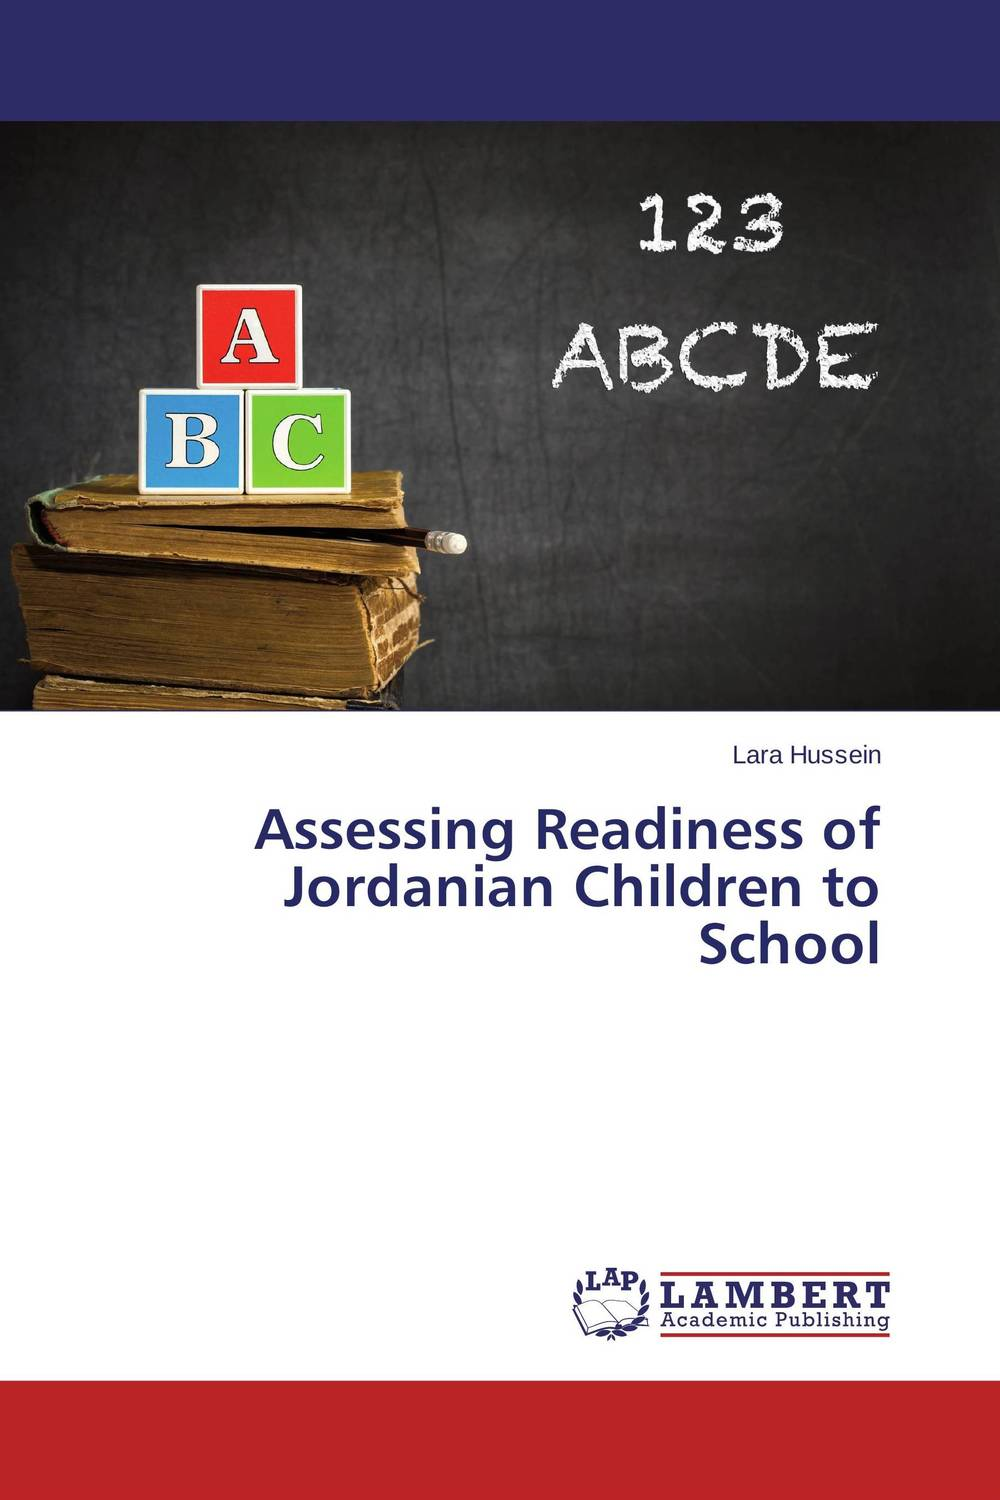 Assessing Readiness of Jordanian Children to School